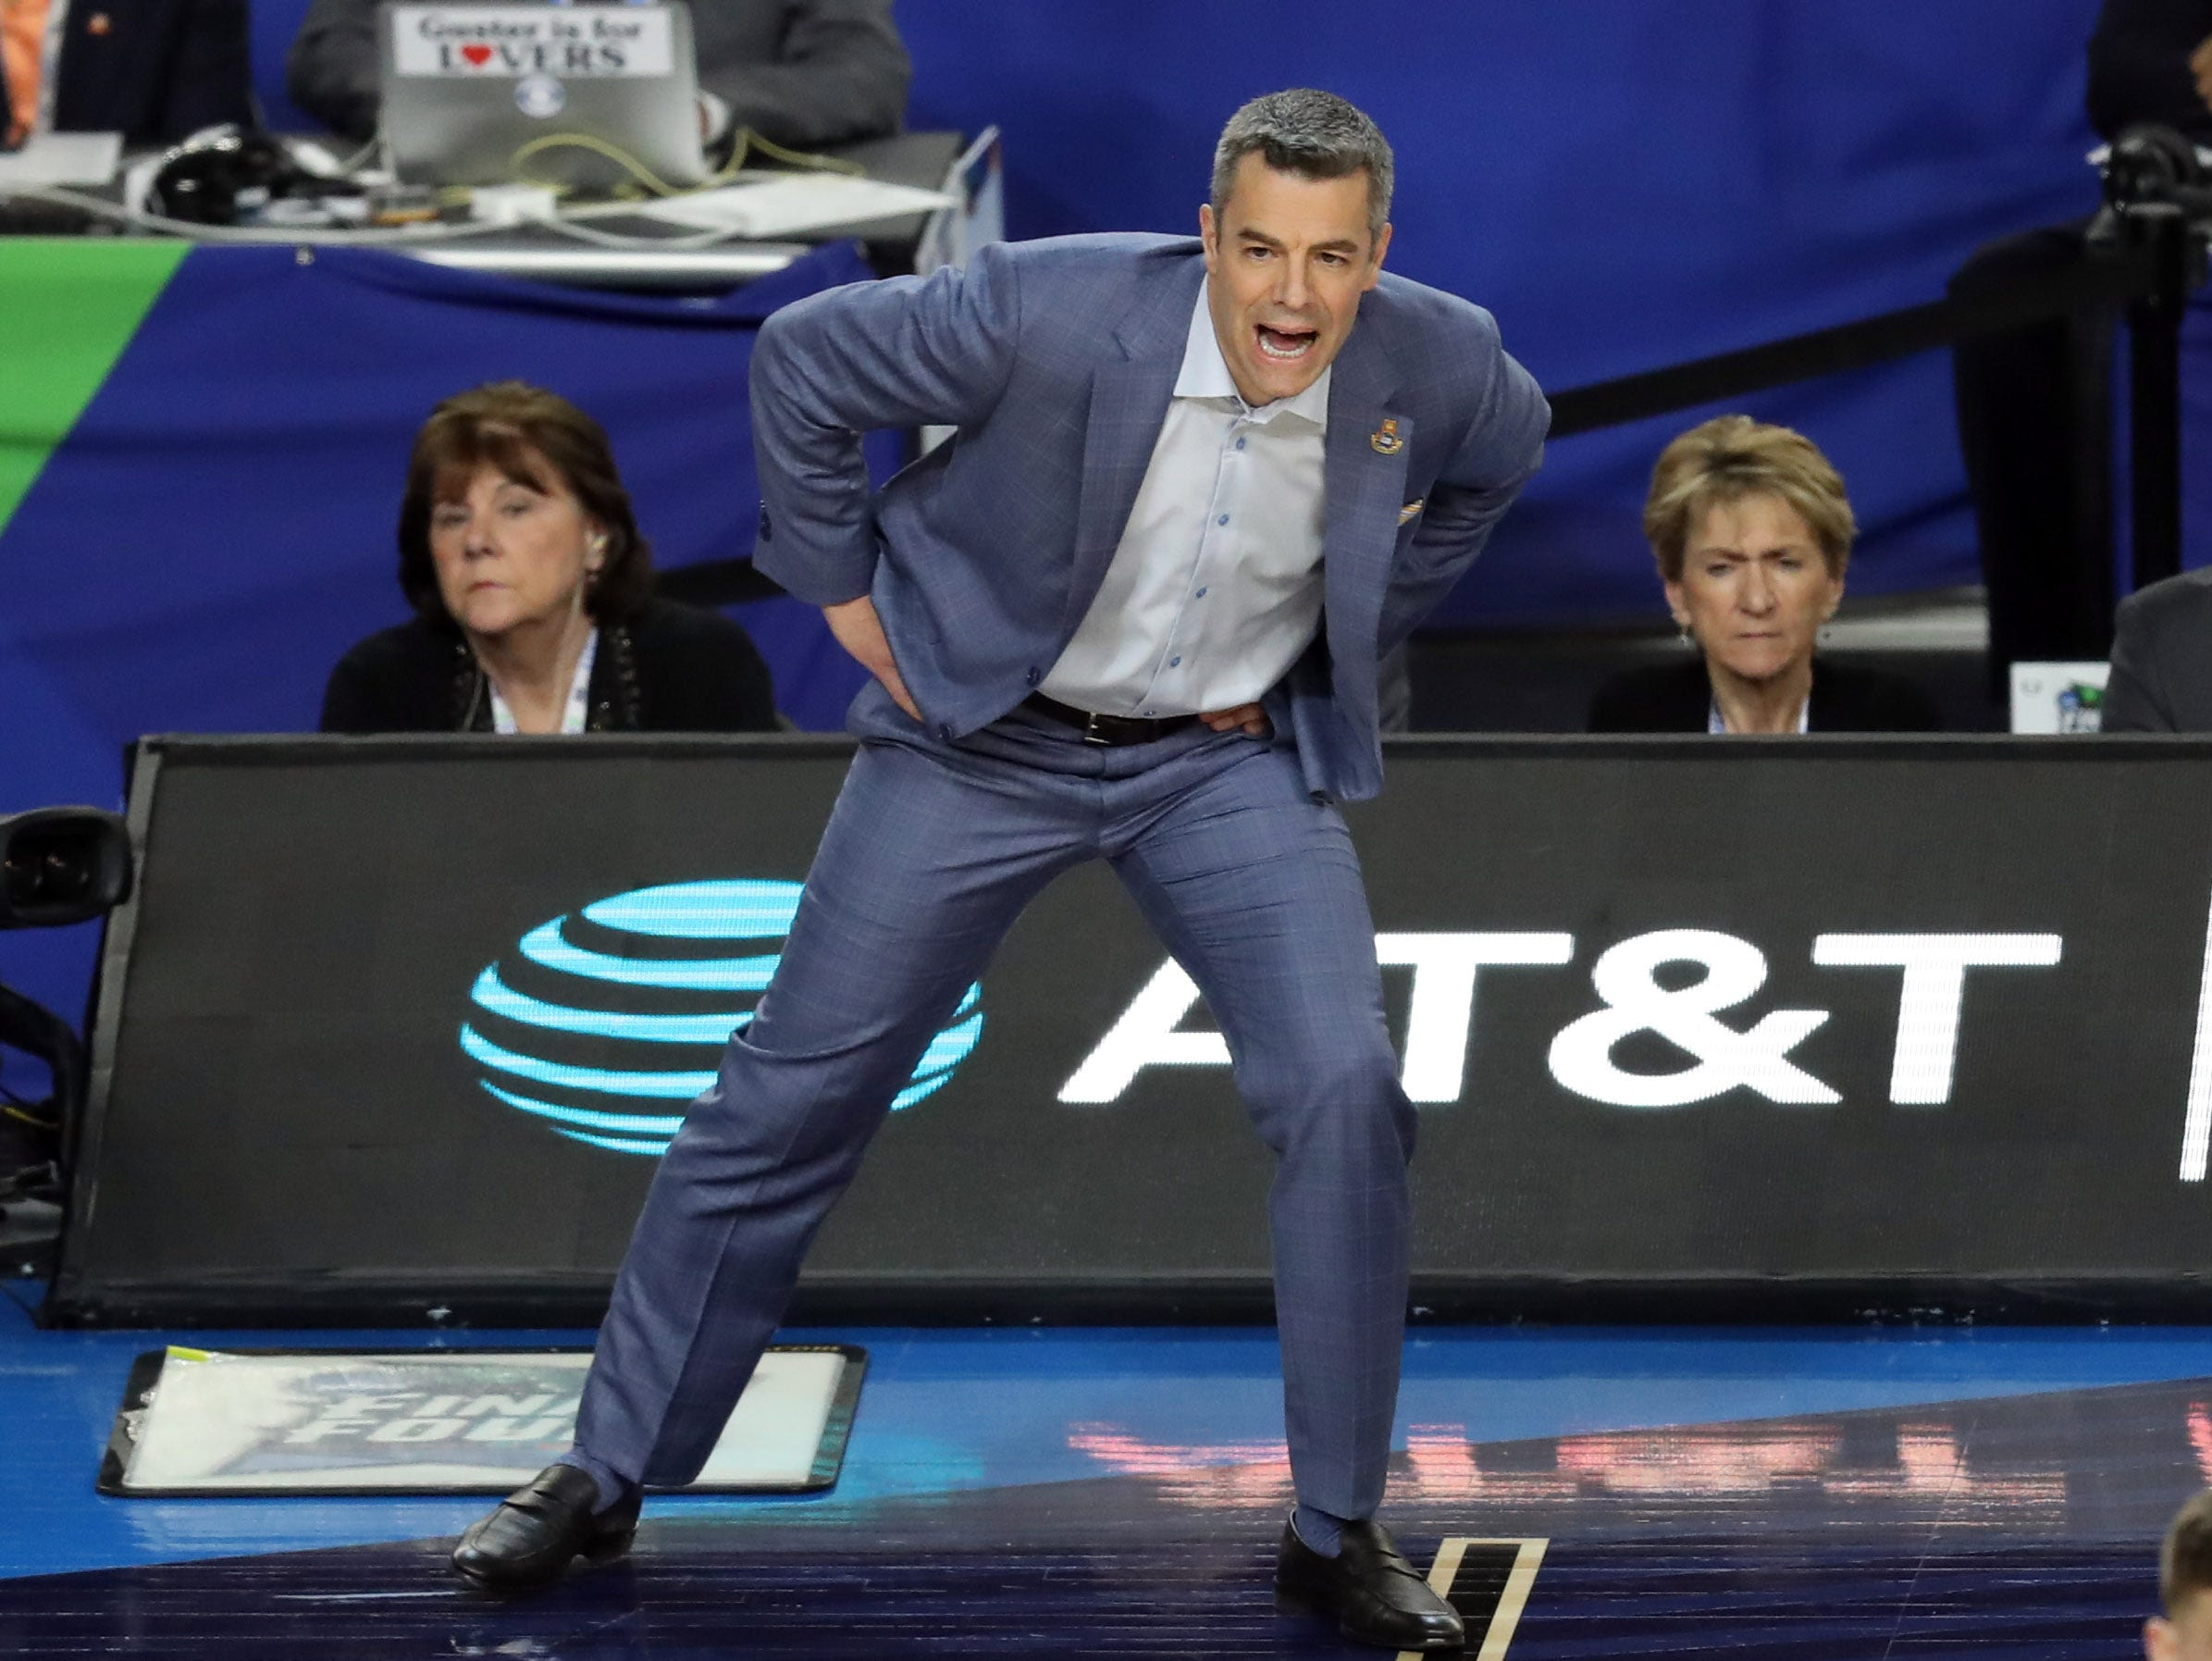 Apr 8, 2019; Minneapolis, MN, USA; Virginia Cavaliers head coach Tony Bennett reacts during the first half against the Texas Tech Red Raiders in the championship game of the 2019 men's Final Four at US Bank Stadium. Mandatory Credit: Brace Hemmelgarn-USA TODAY Sports